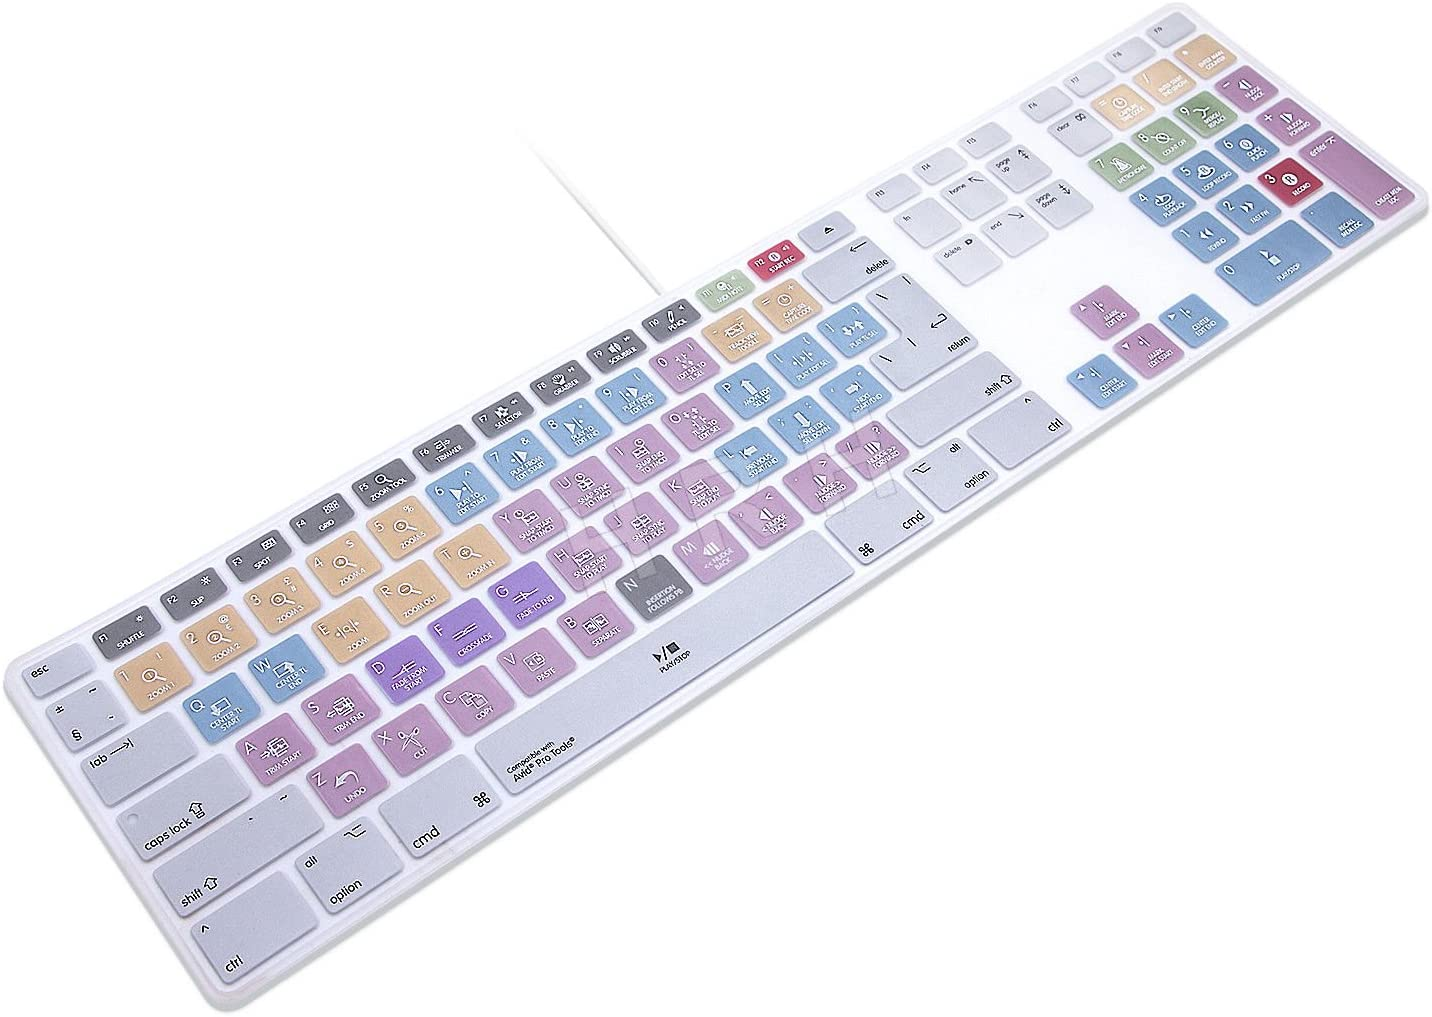 HRH Avid Pro Tools Functional Shortcuts Hot Keys Design Silicone Keyboard Skin Cover for Apple iMac Keyboard G6 with NumberPaid Number pad A1243 MB110LL/B and MB110LL/A[US/EU Layout]